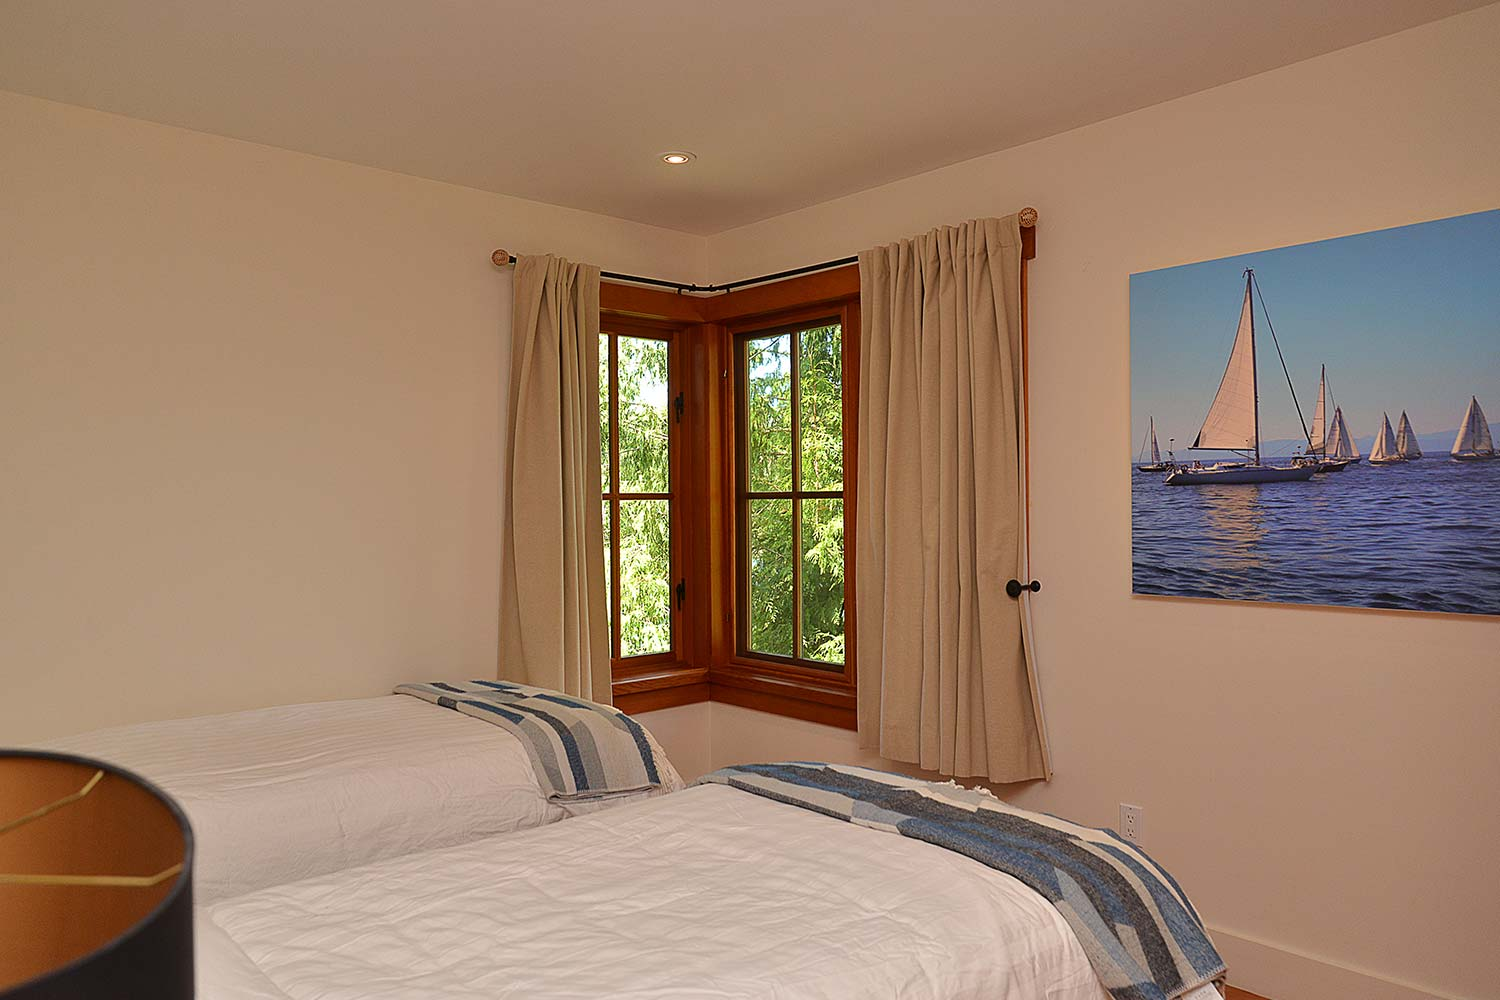 Two single beds in one of the bedrooms of this Pender Harbour resort home. The bedroom has sailing artwork on the wall.